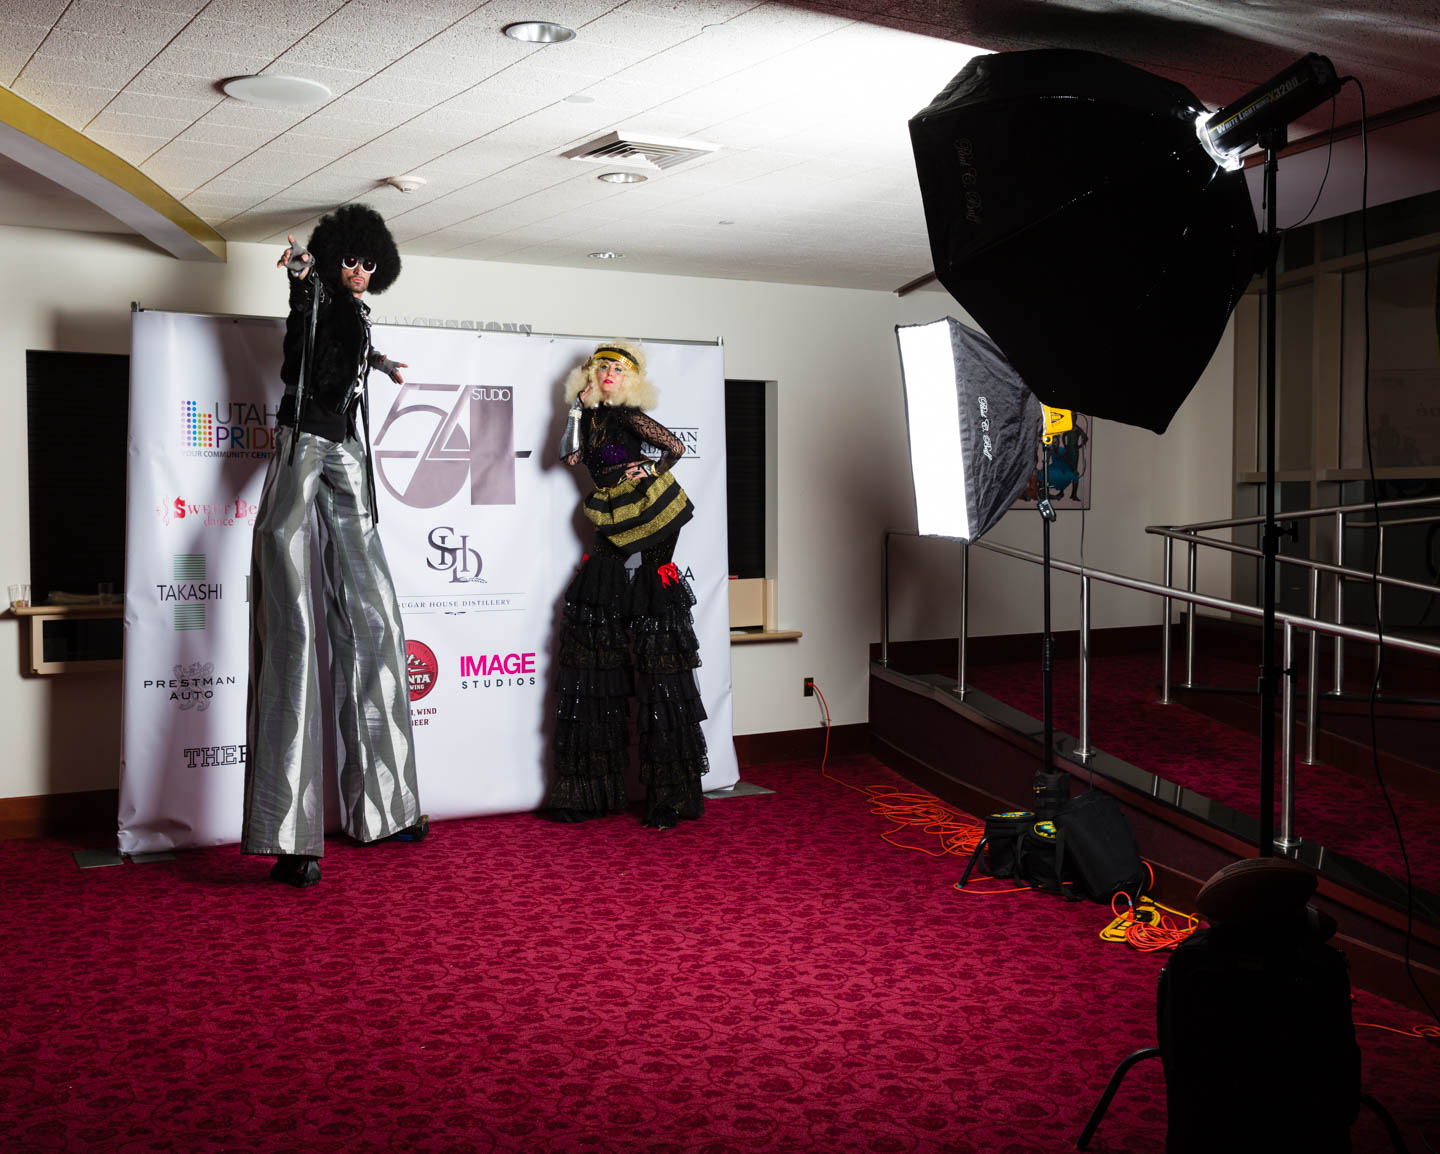 A behind the scenes photos of the photo booth